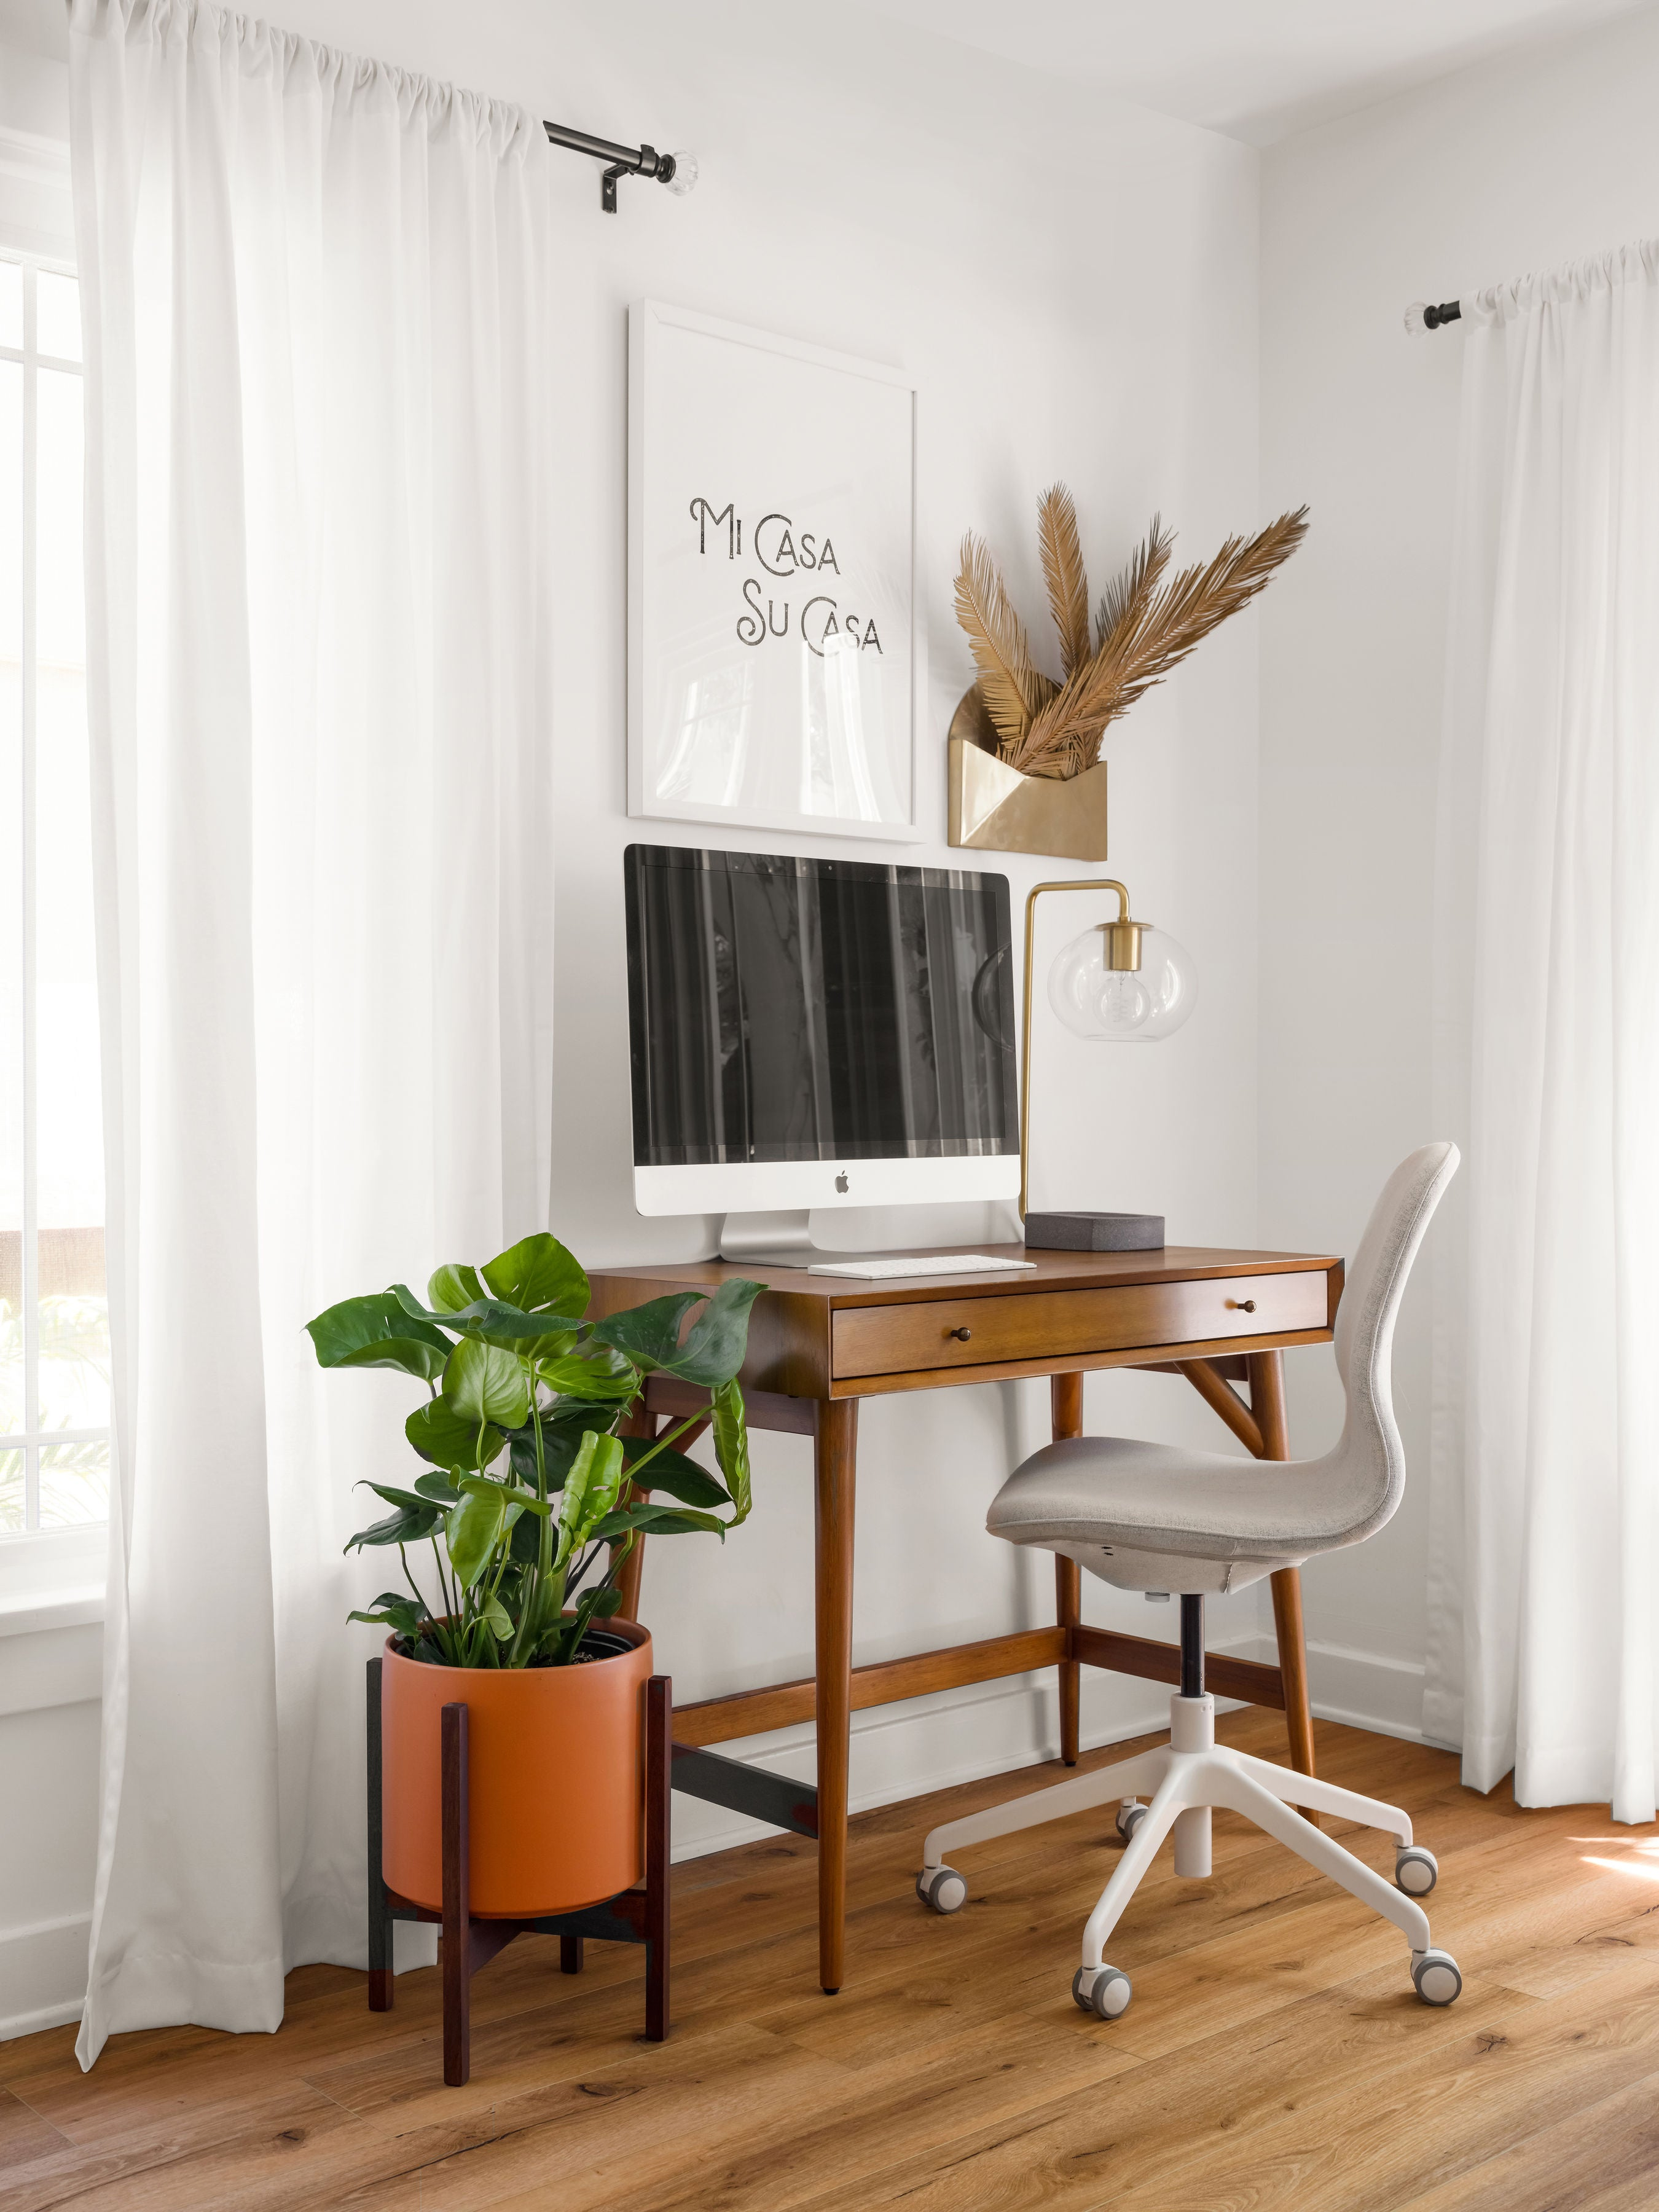 Image of Home Office with MidCentury Modern Ceramic Cylinder Planter next to Desk with Computer Monitor